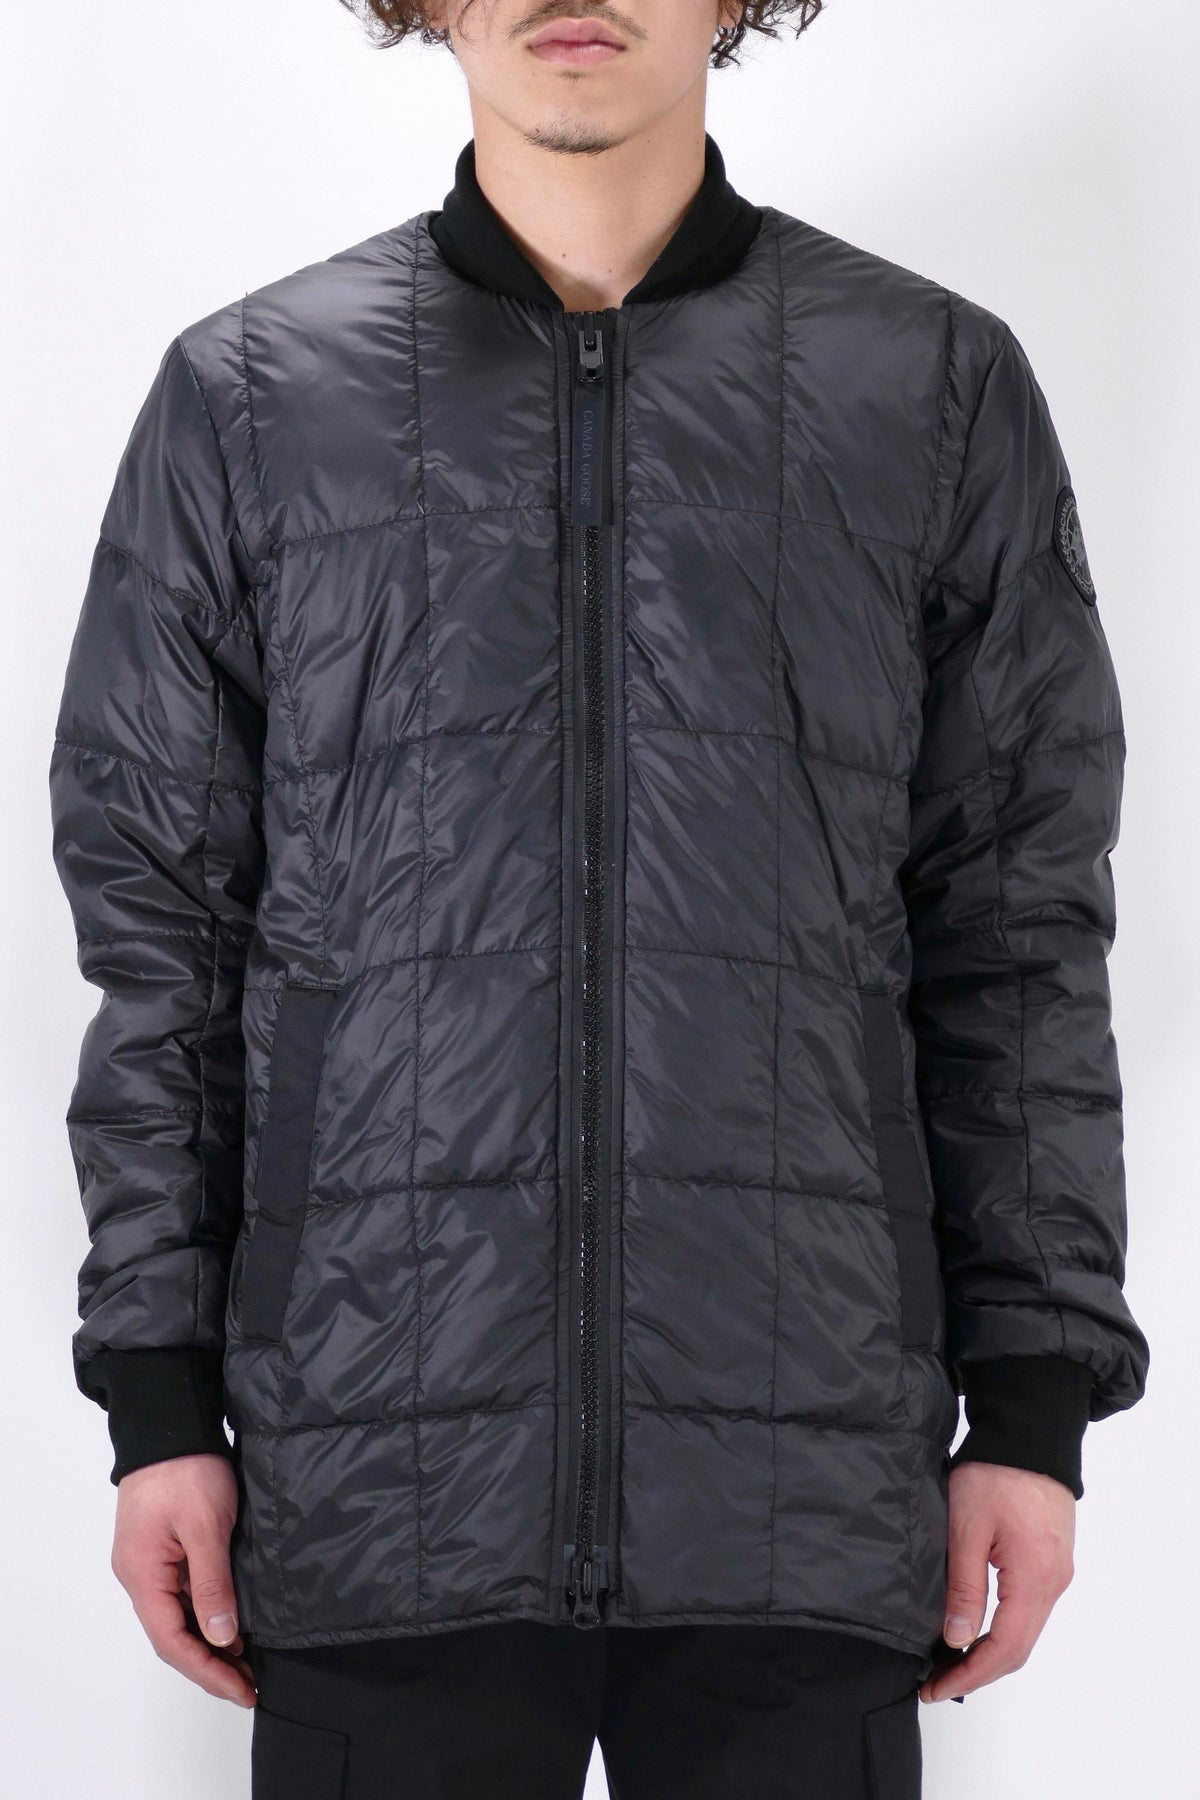 Canada Goose Mens Lite Jacket Harbord Black Label - Black